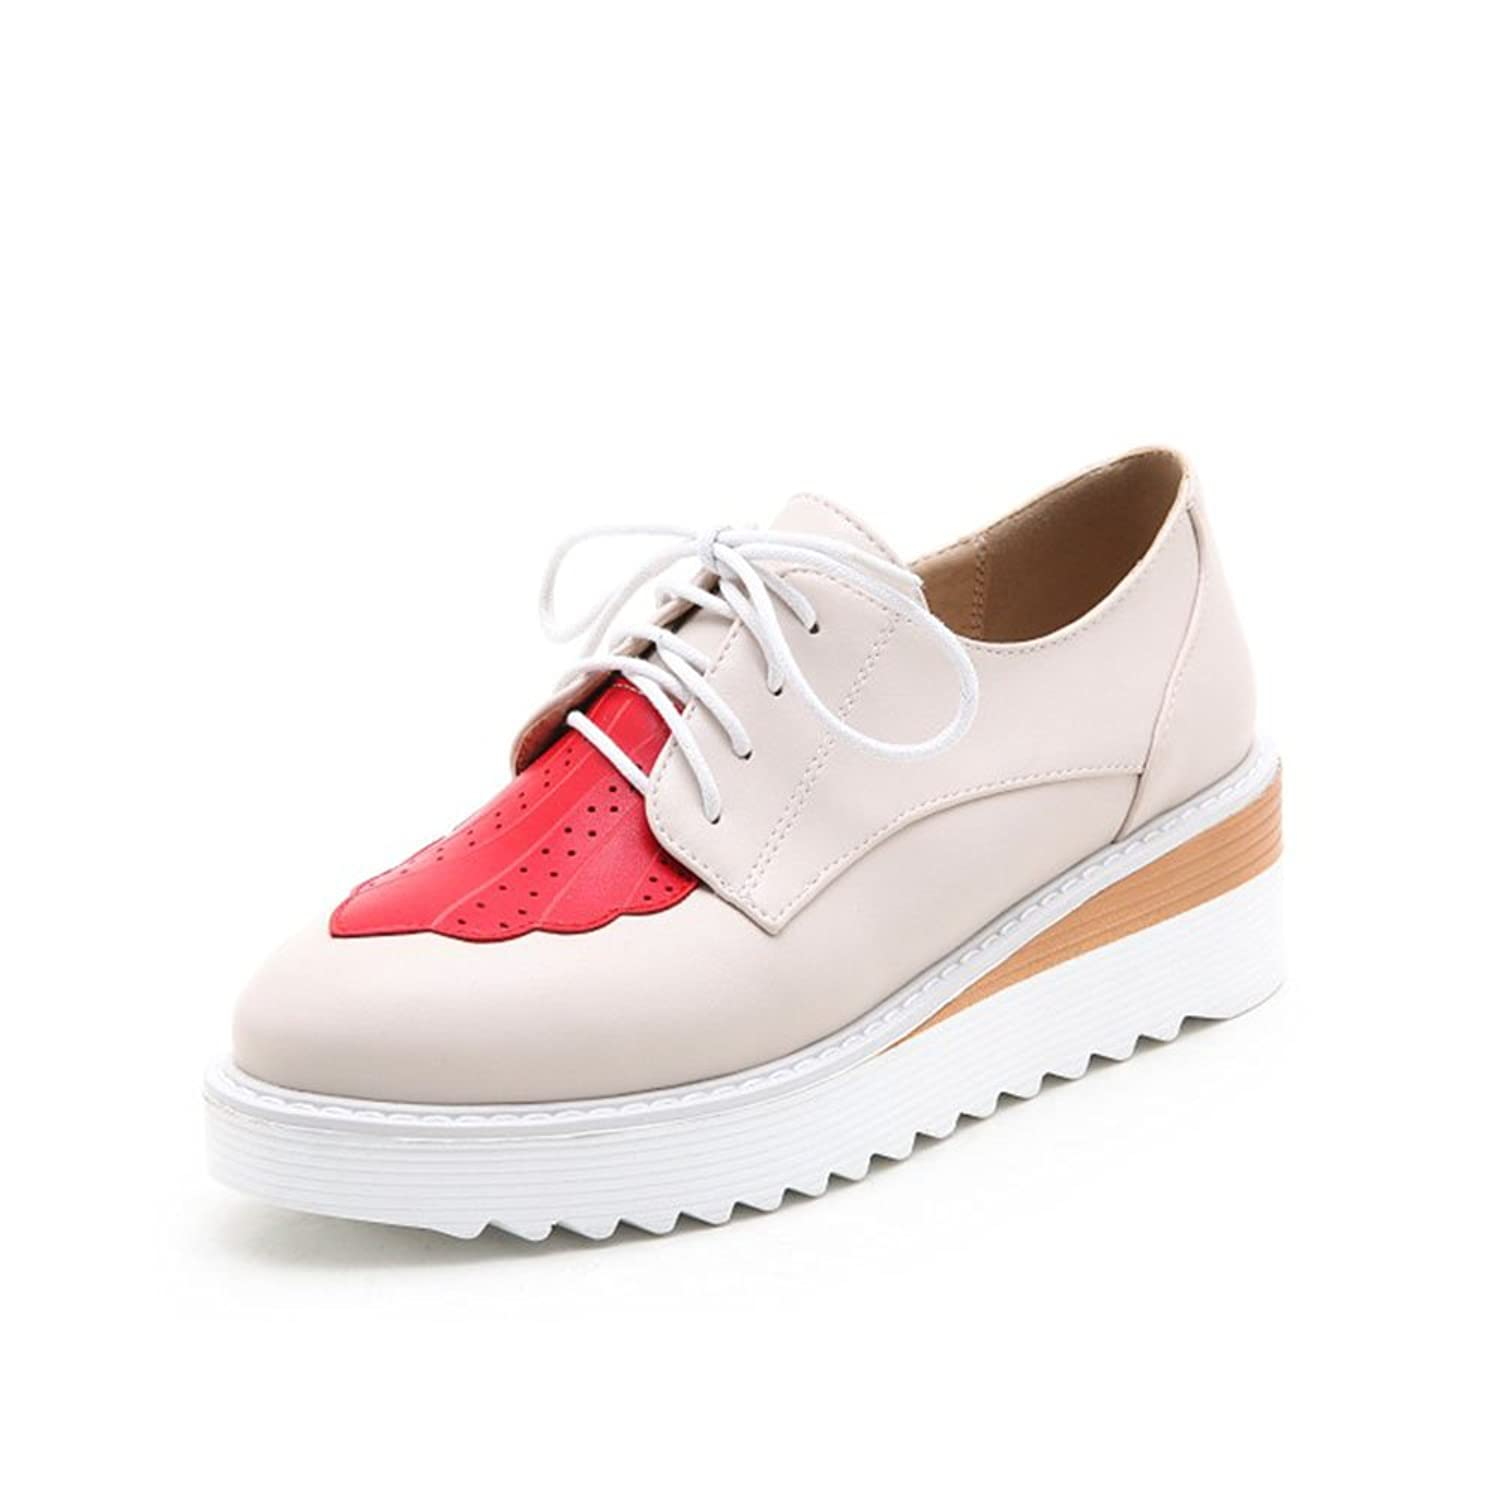 POP Style POPSTYLE Women Platform Lace-Up Wingtips Pointed Toe Oxfords Shoes Beige 8